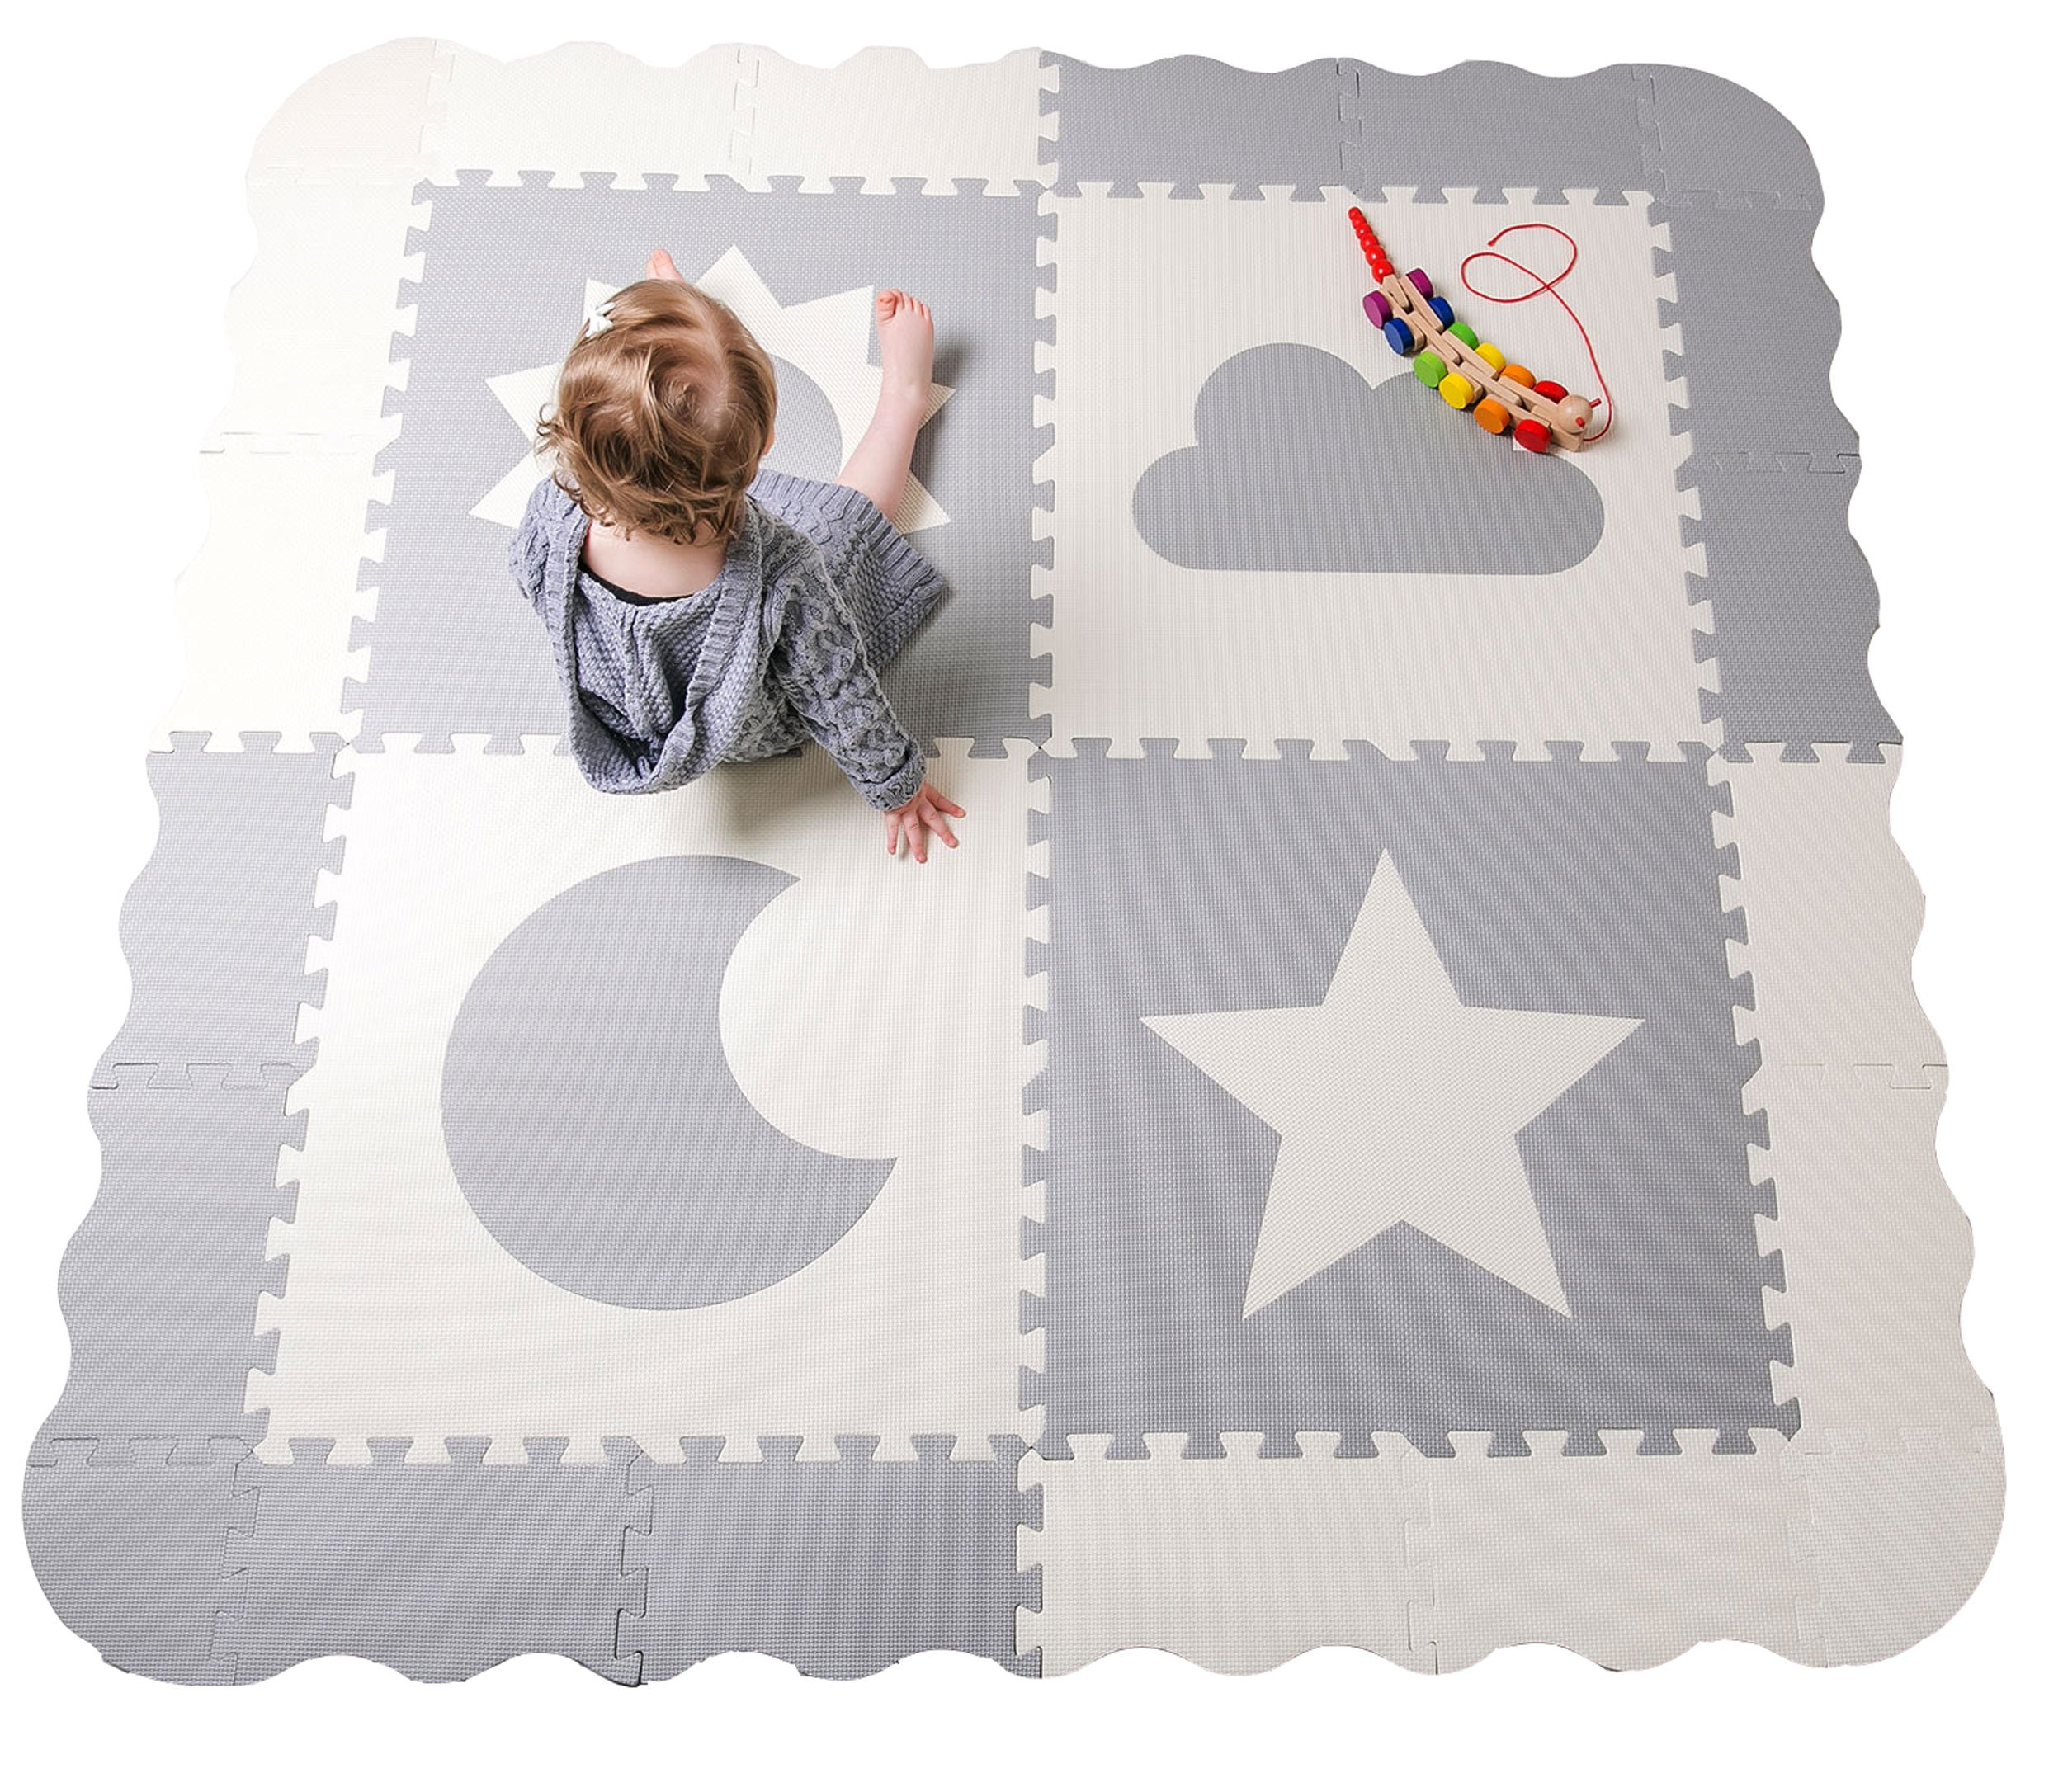 Baby Play Mat Tiles - 61'' x 61'' Extra Large, Non Toxic Thick Floor Mat for Kids, Grey & White Interlocking Foam Playroom & Nursery Playmat, Safe & Protective For Infants Tummy Time